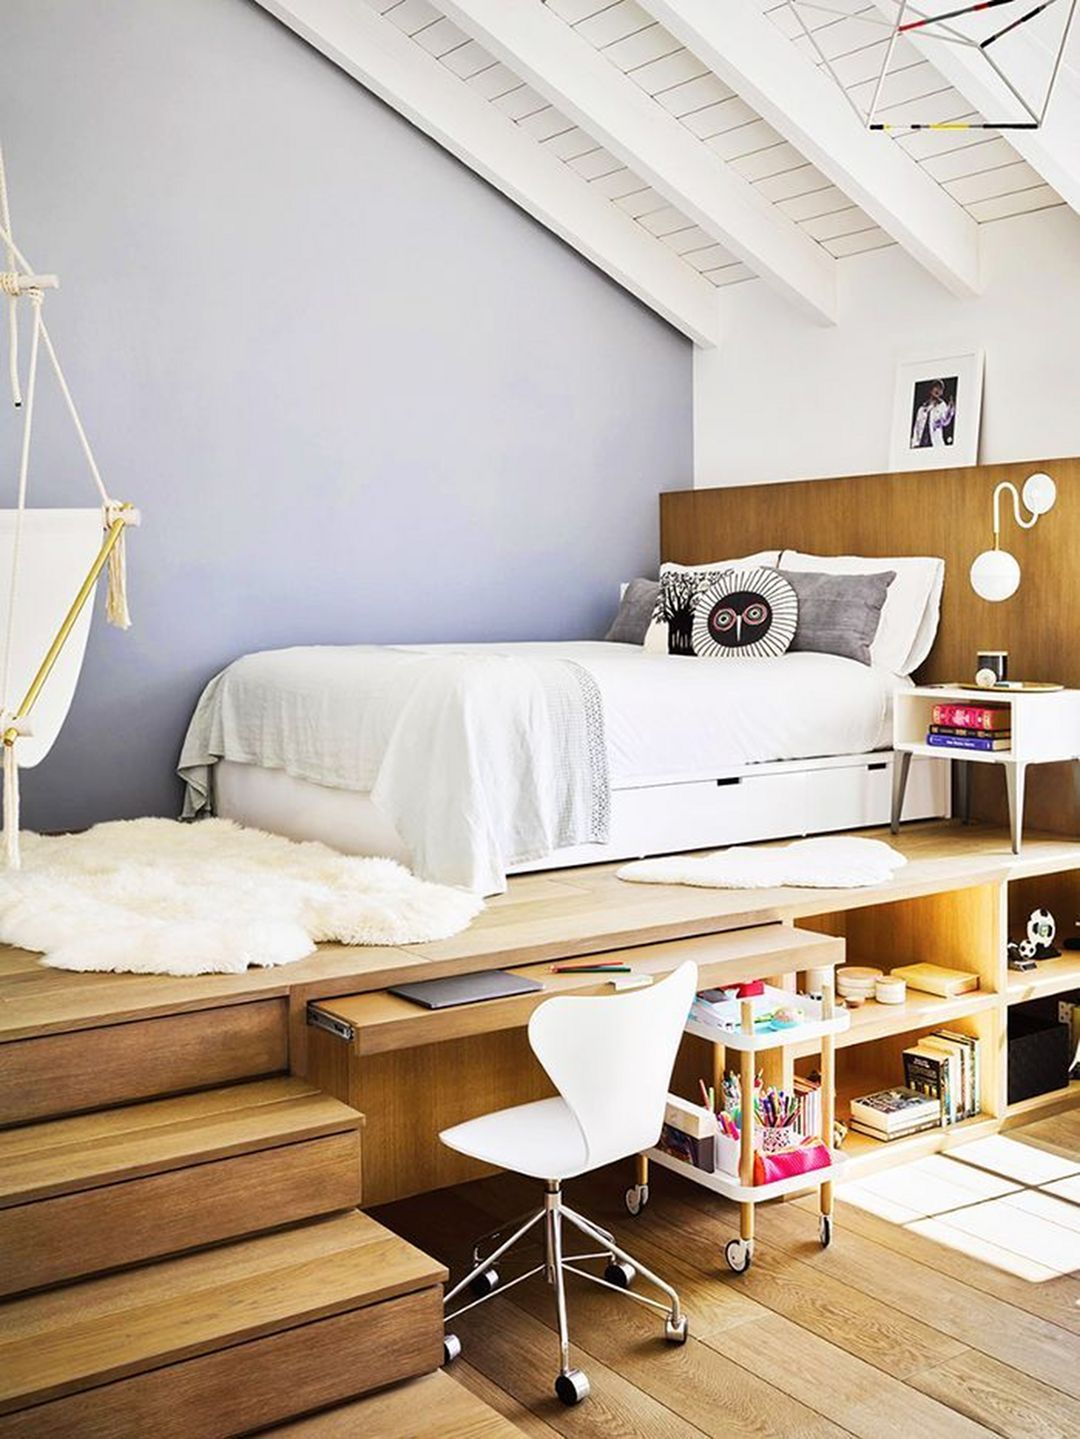 Space Saving Teens Bedroom Furniture: 25 Amazing And Beautiful Loft Bedroom Design Ideas For